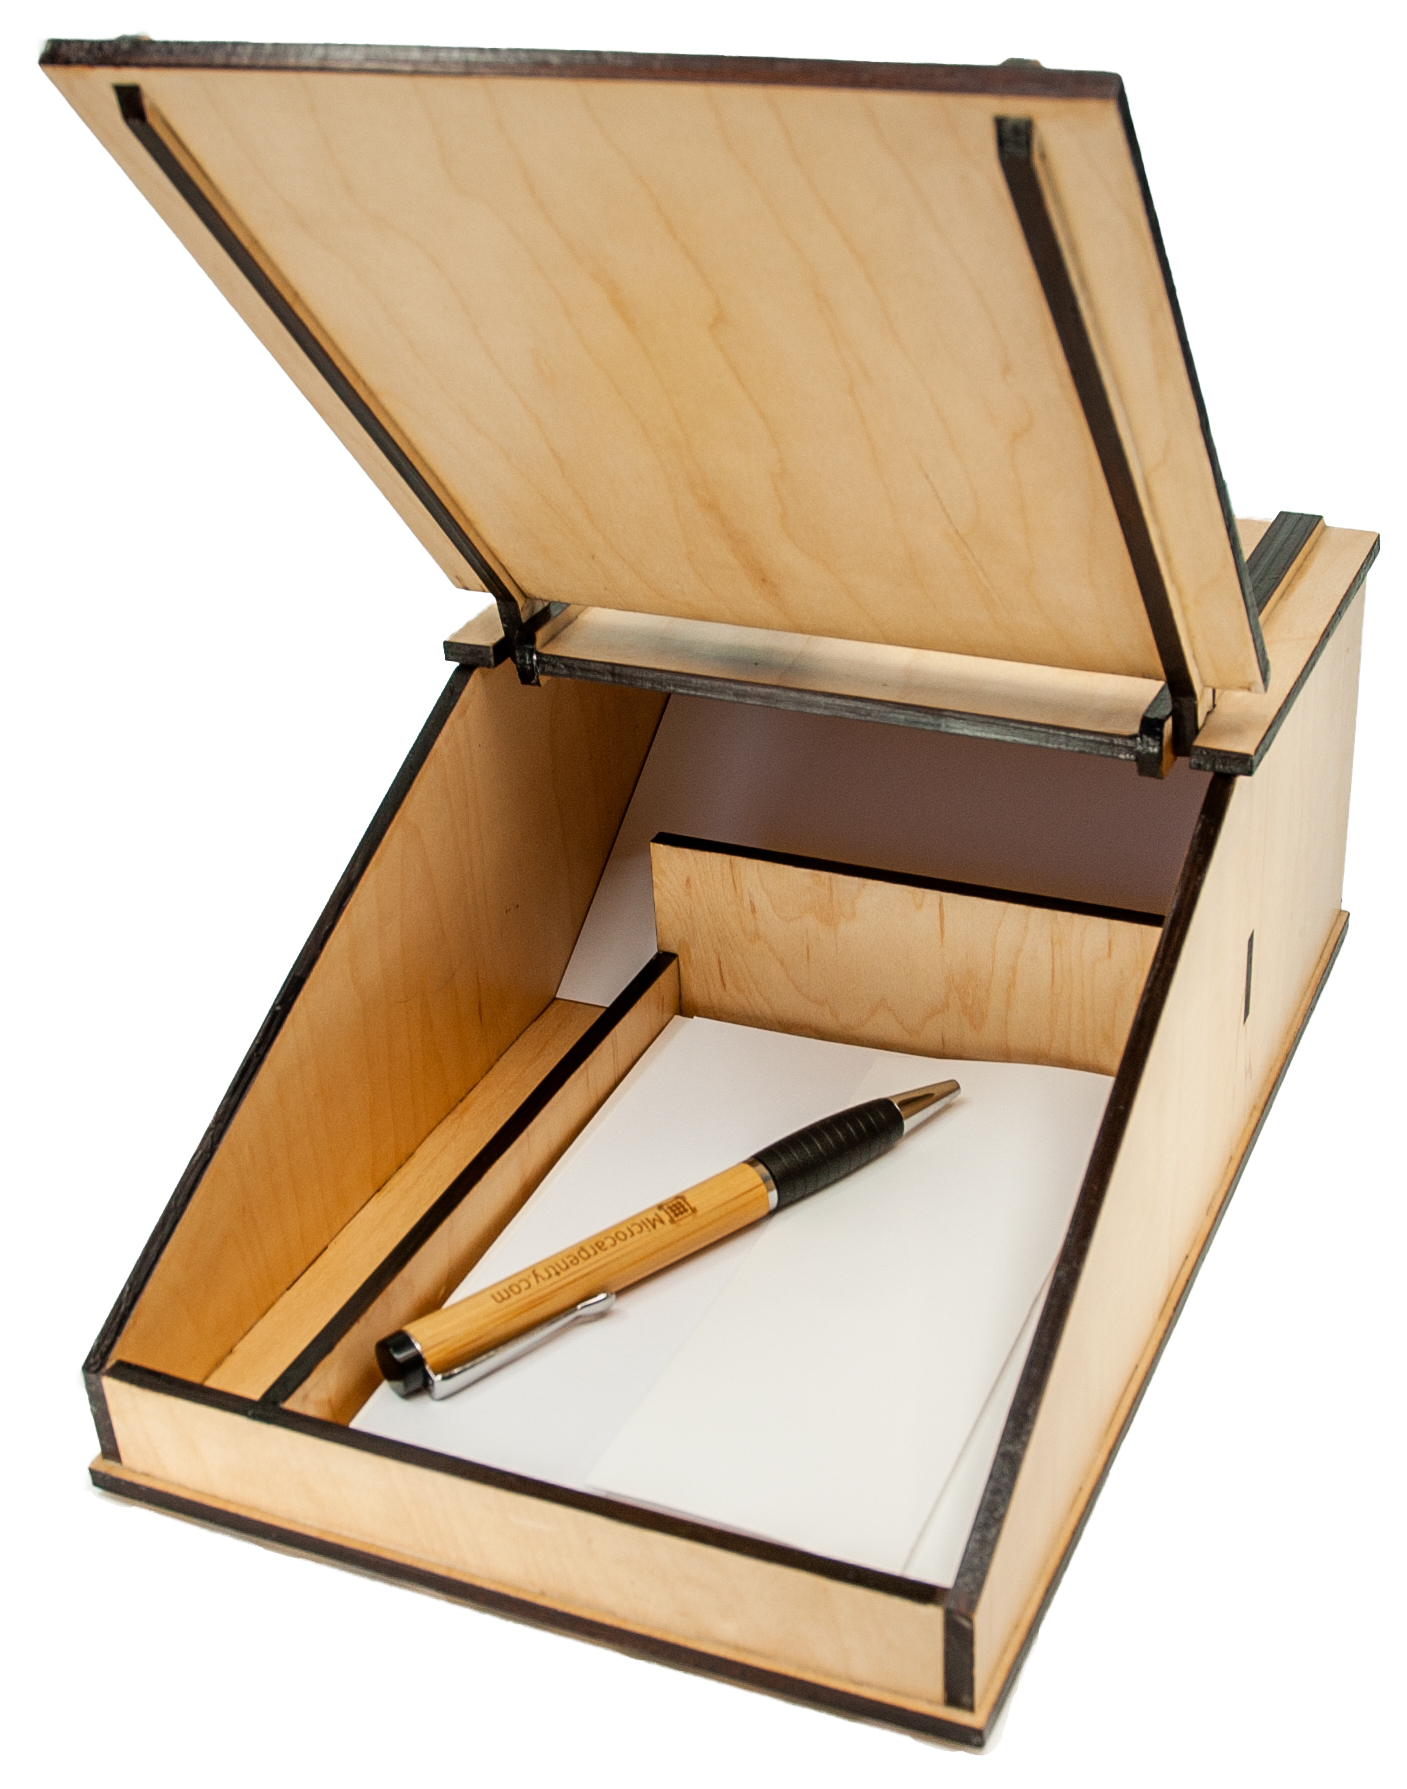 Writer's Box with Pen and Cards